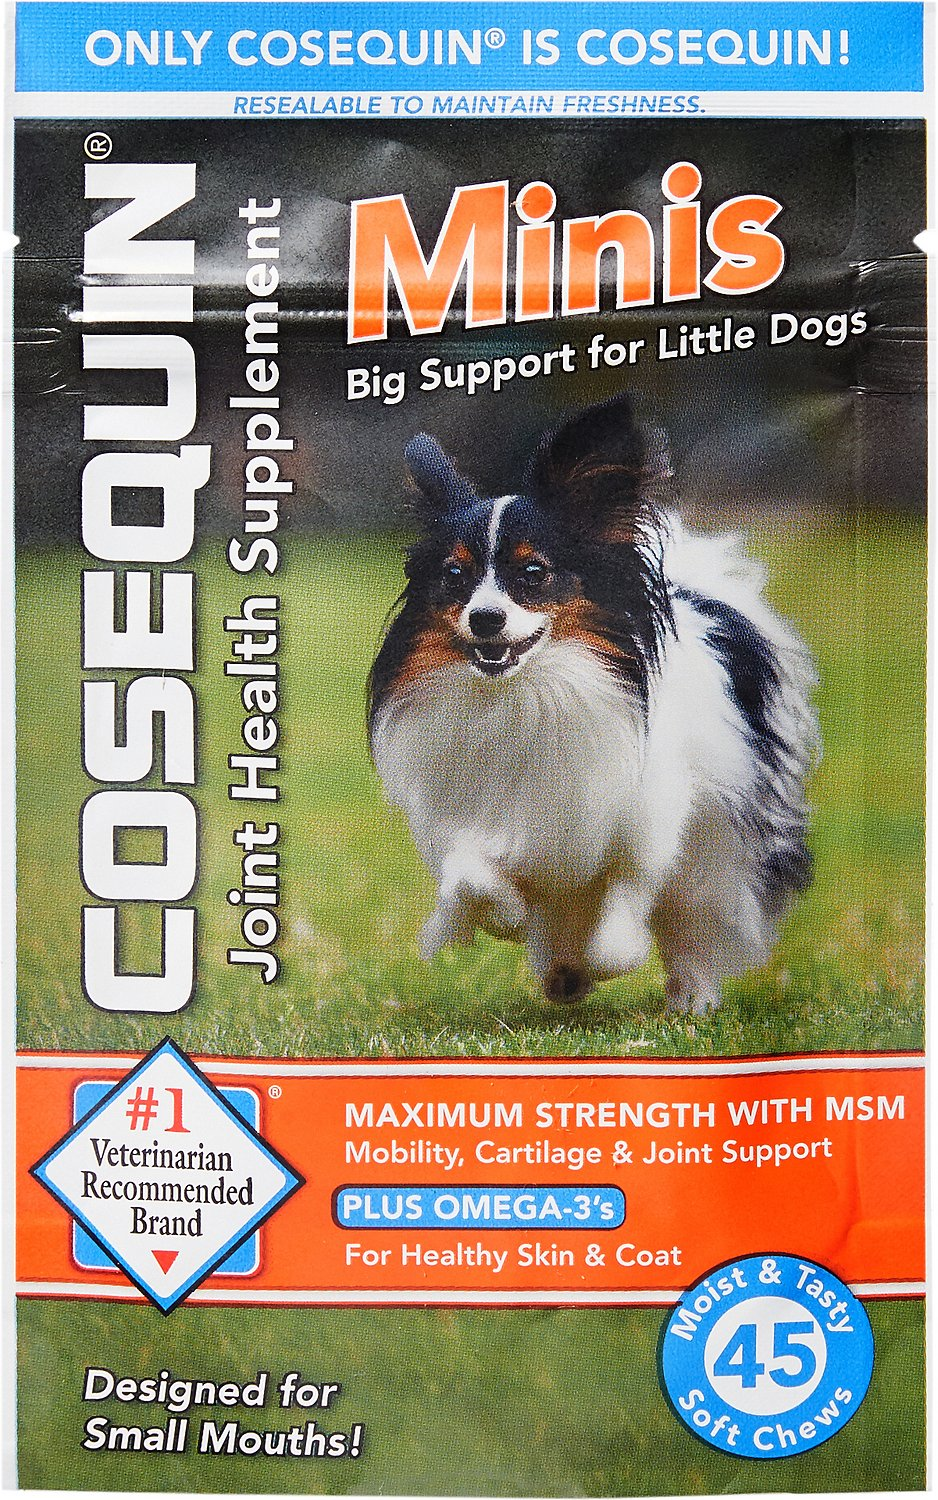 Nutramax Cosequin With MSM Plus Omega 3's Mini Soft Chews